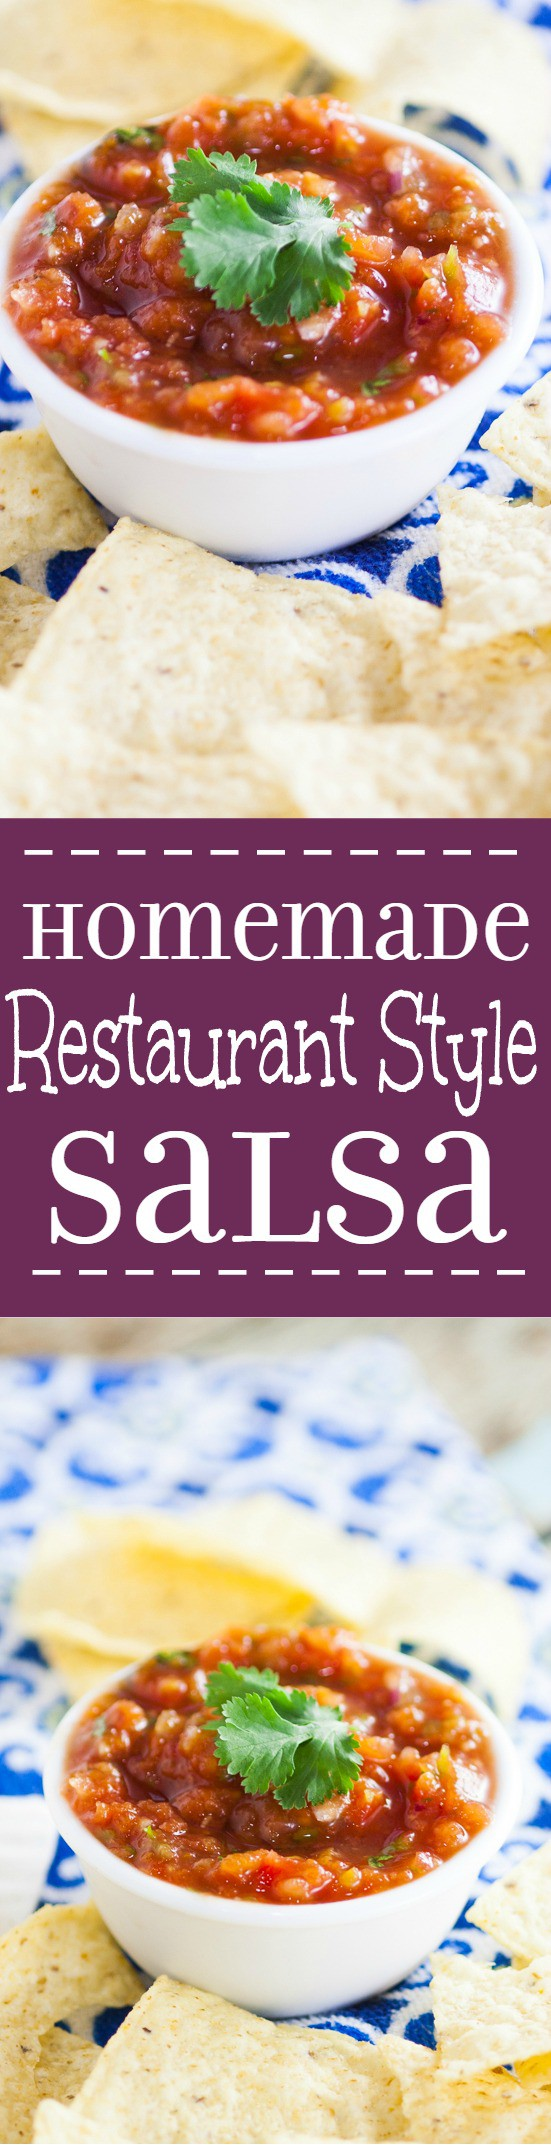 Homemade Restaurant Style Salsa is the perfect dip recipe to feed a crowd. Make your own Homemade Restaurant Style Salsa in minutes that's just as delicious as your favorite Mexican restaurant. Fresh, tasty, easy and perfect to feed a large crowd. This looks delicious!